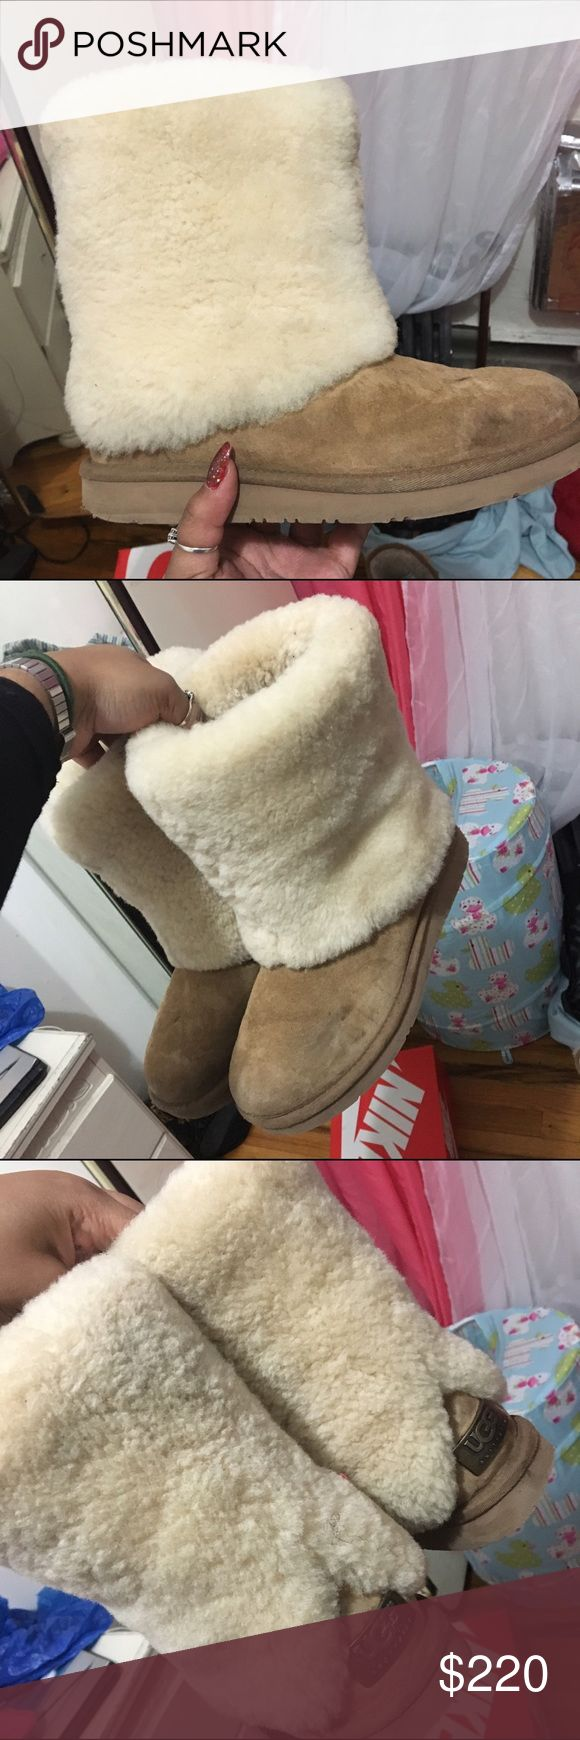 Ugg Australia boots with fur Used Ugg boots (offers accepted) - NO RETURNS UGG Shoes Winter & Rain Boots